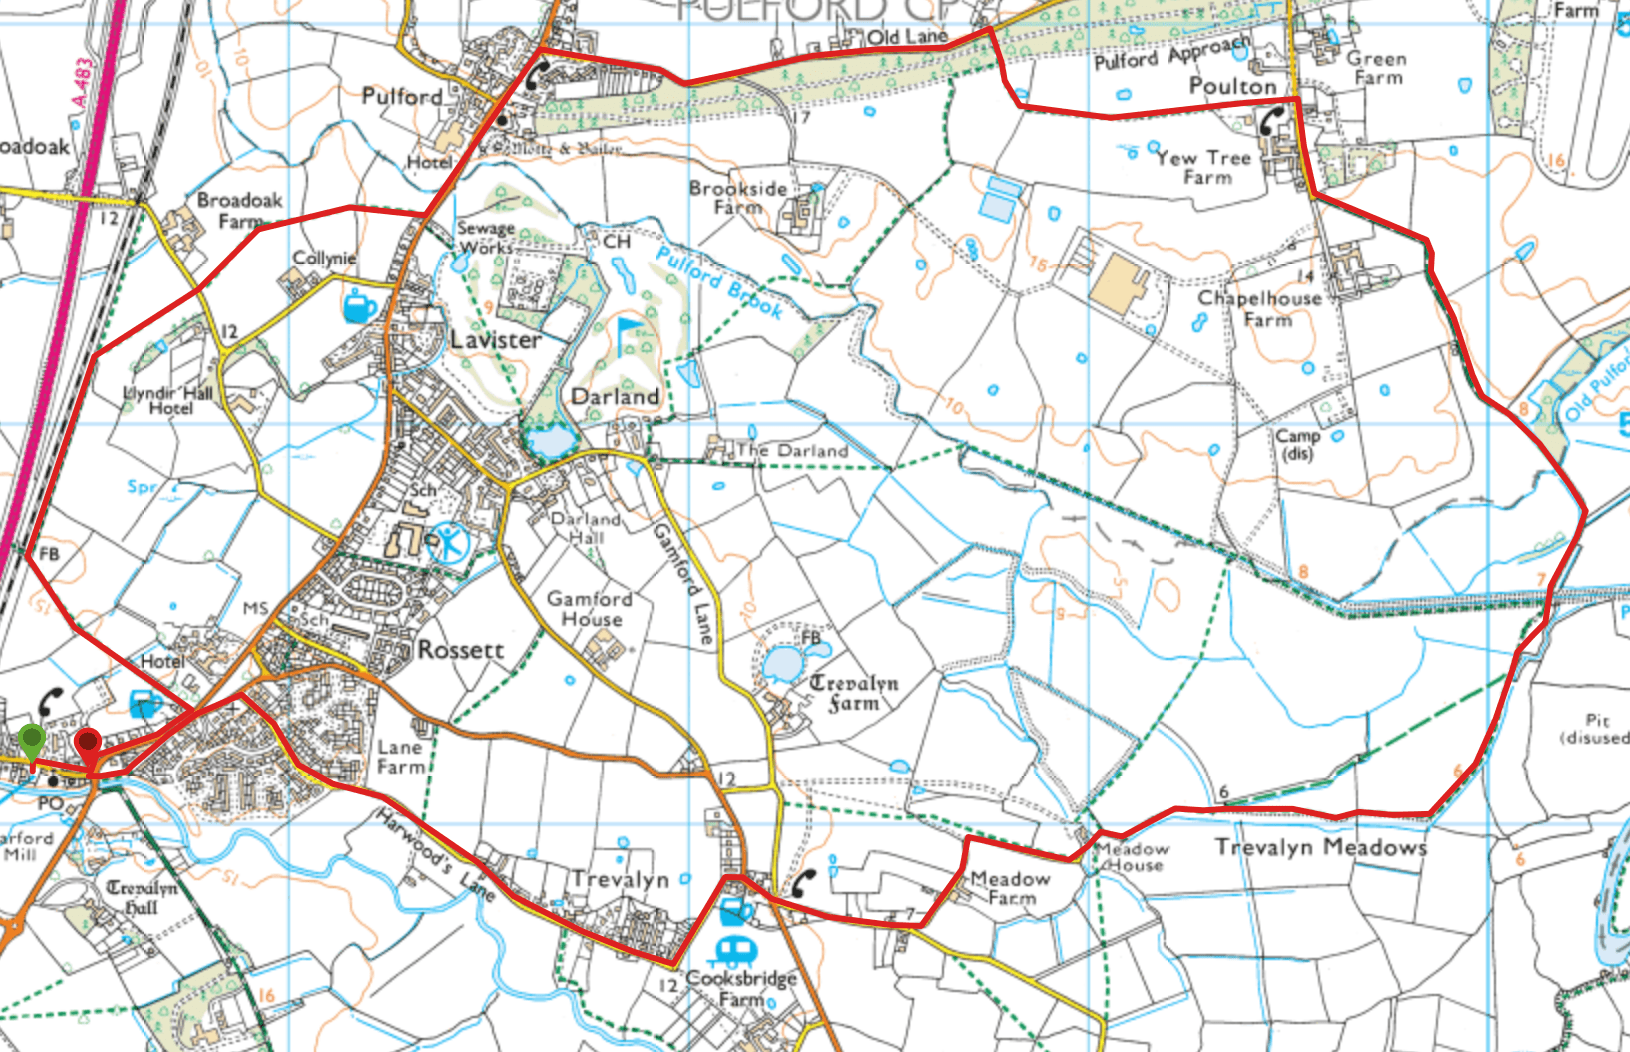 Pulford, Poulton and Trevalyn Meadows Map.